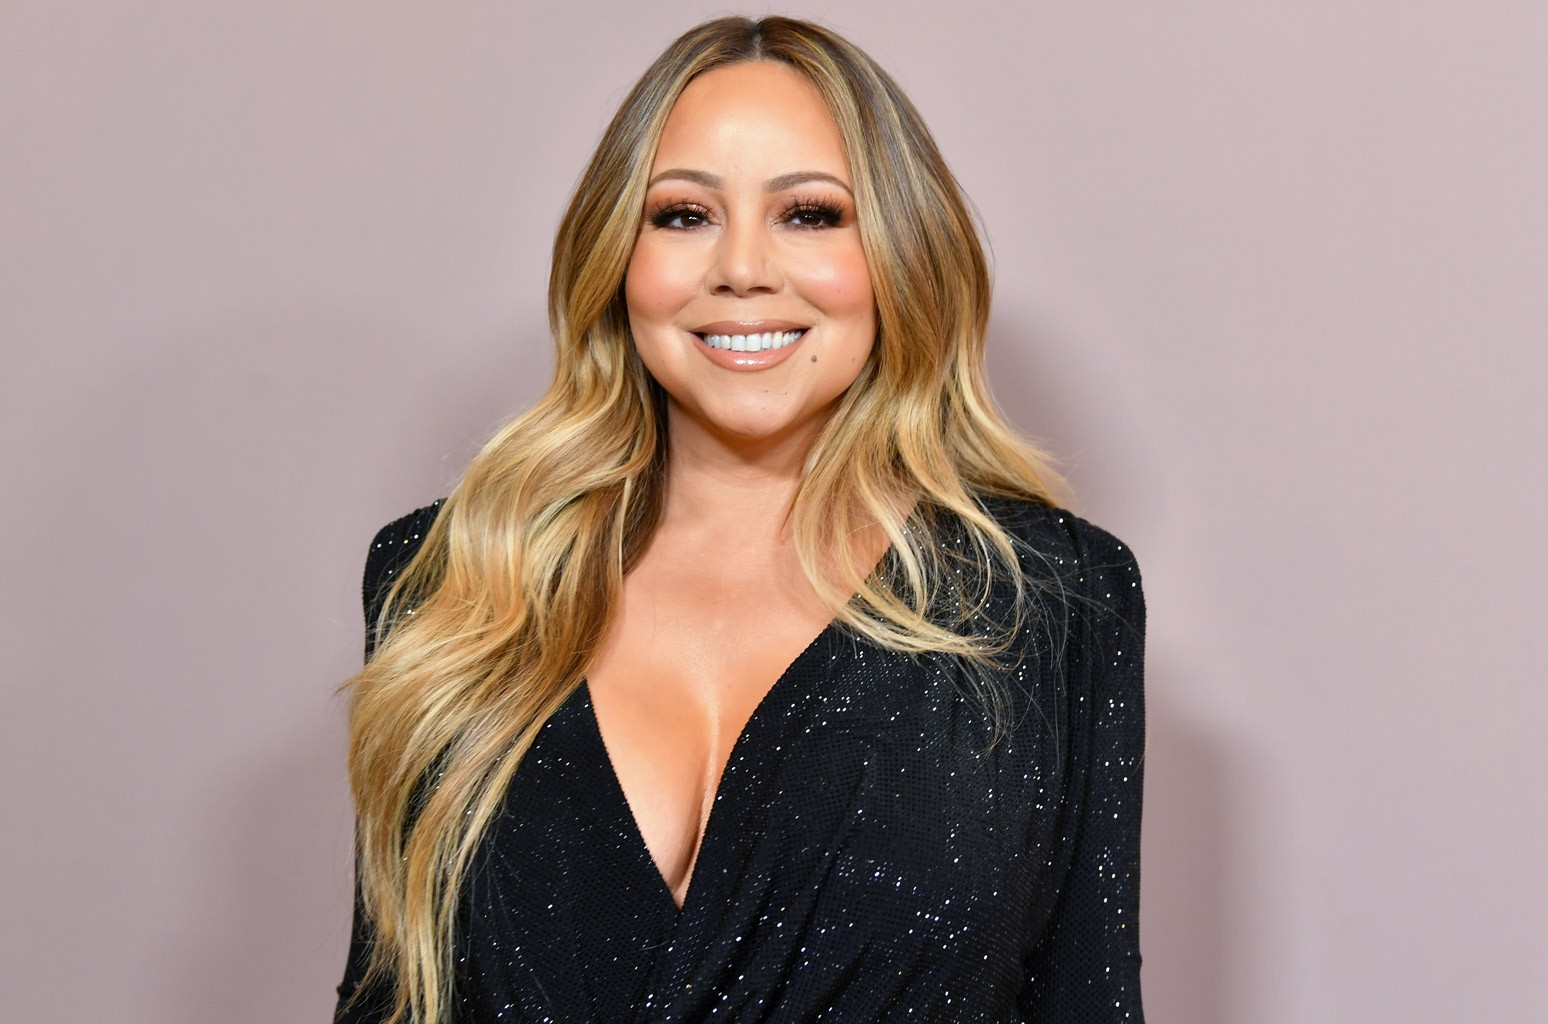 Mariah Carey Does Not Approve of This Fan's Festive Ornament